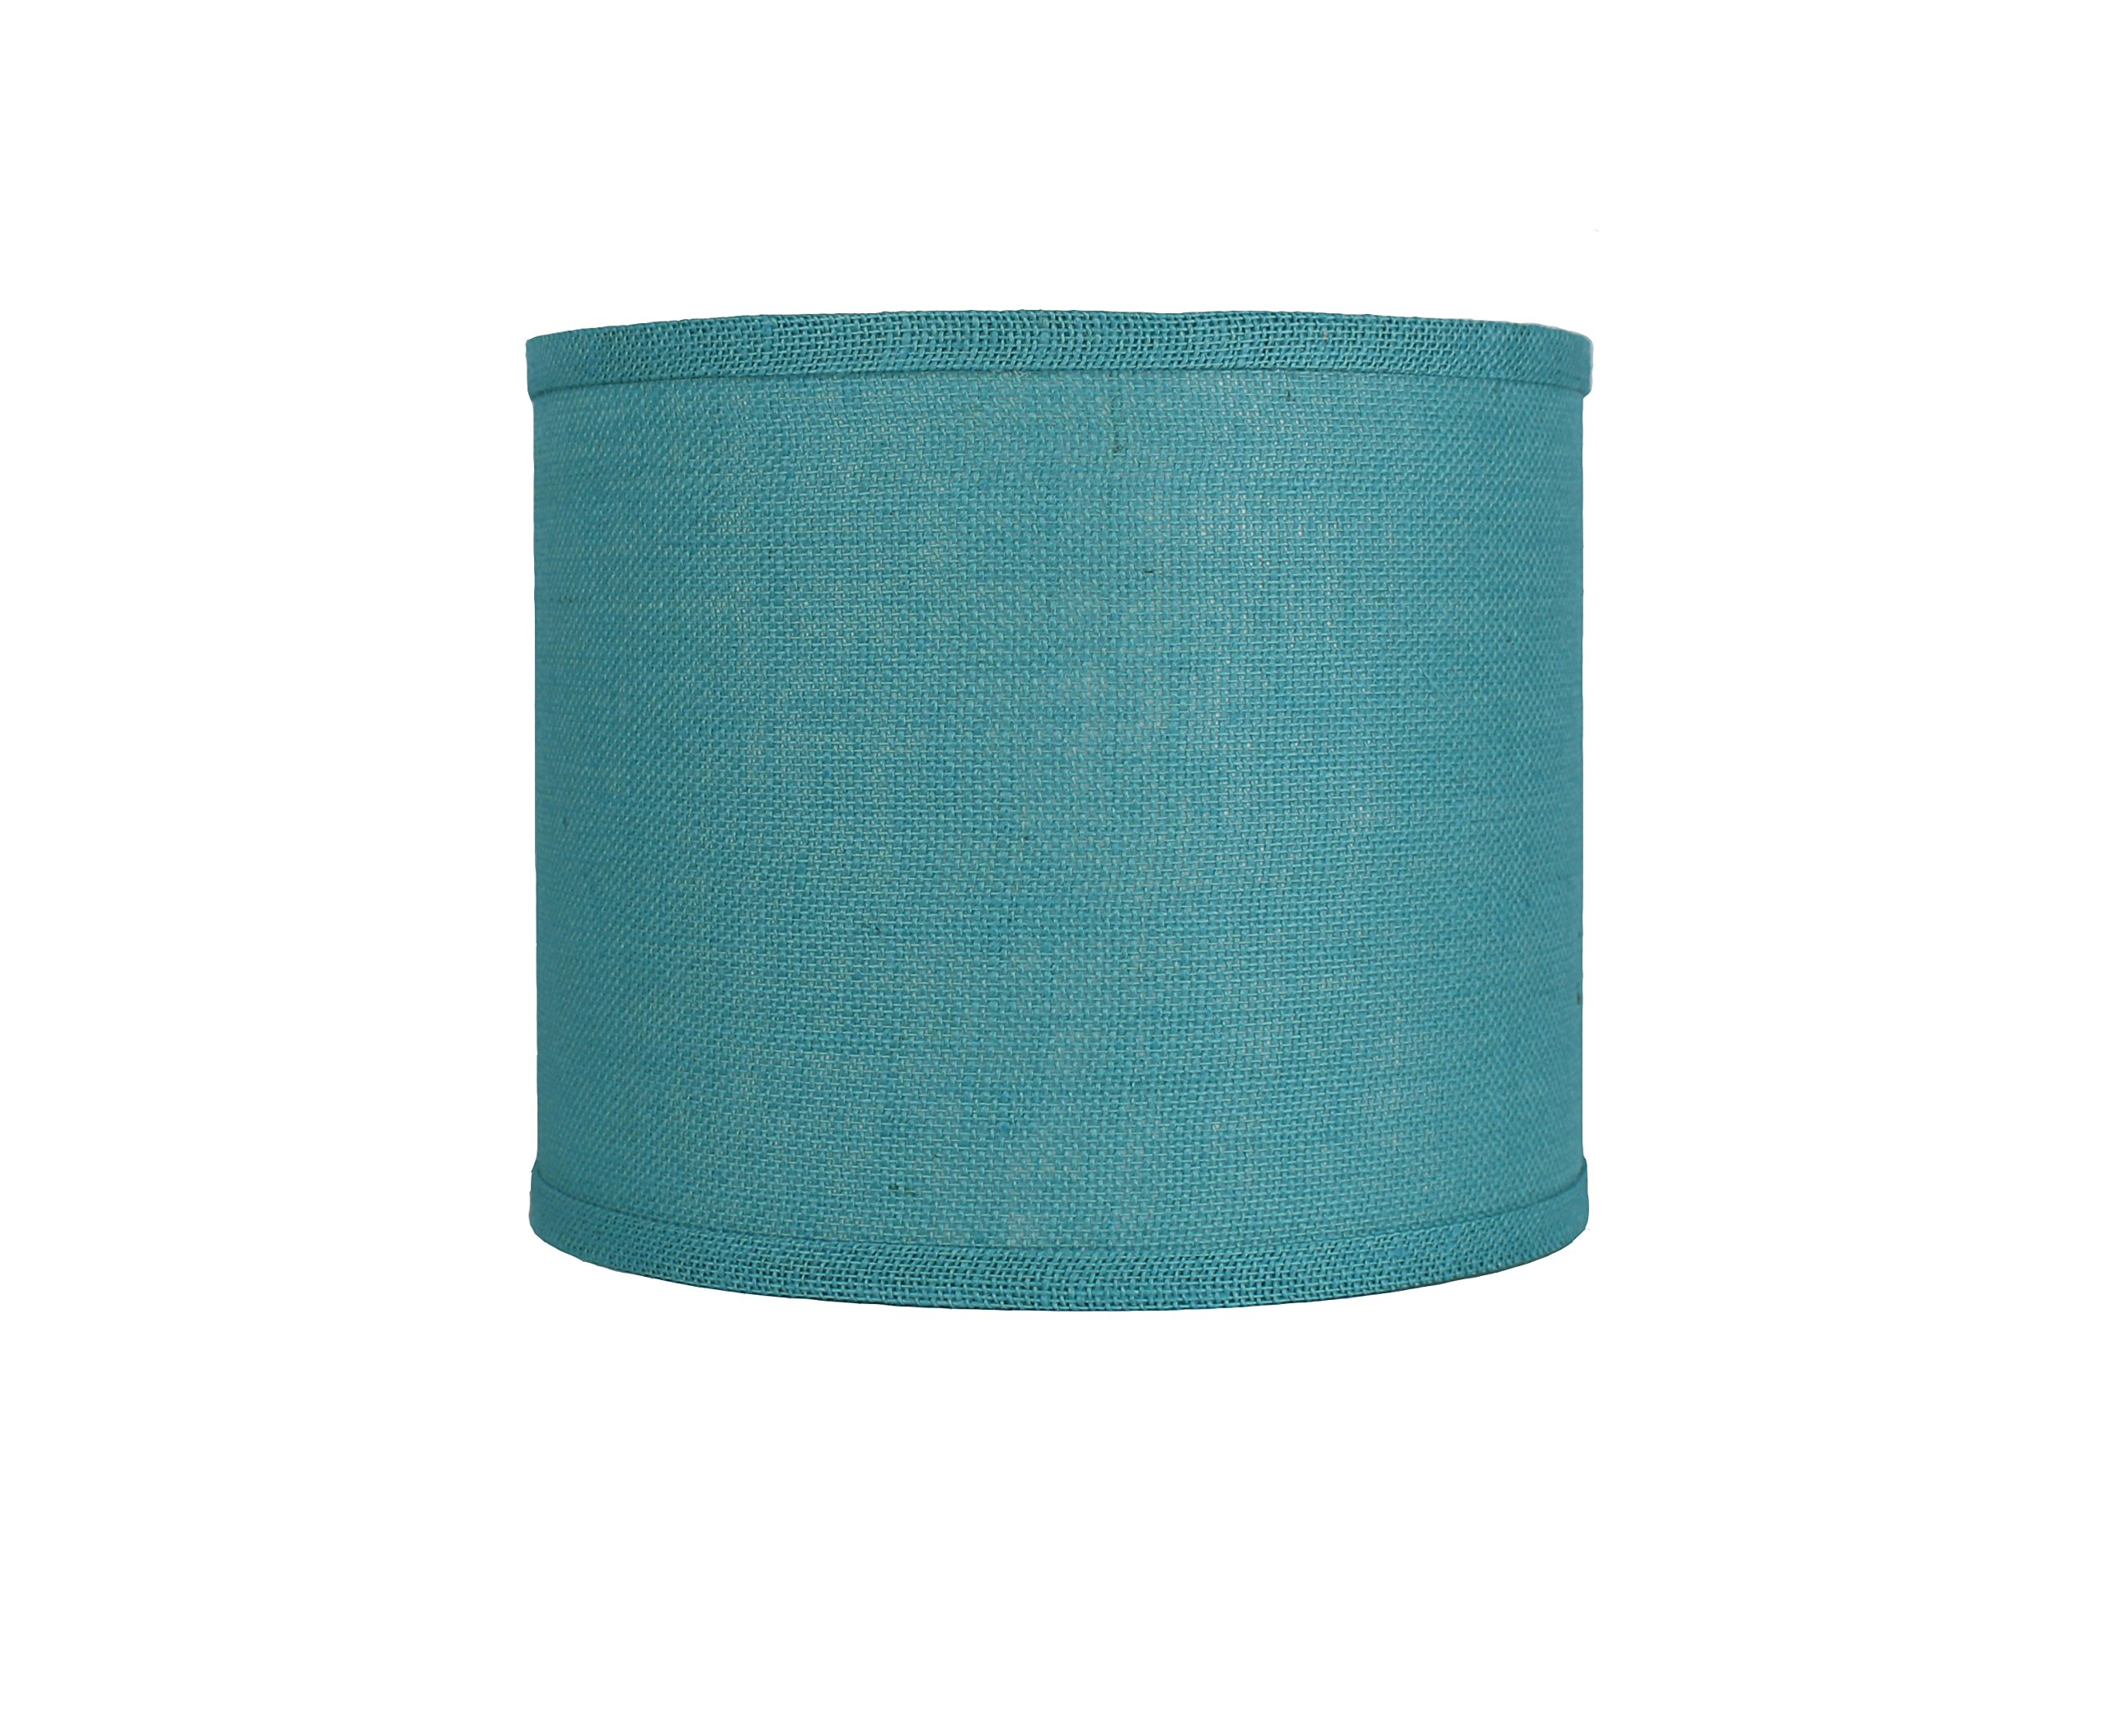 Urbanest Classic Drum Burlap Lampshade, 12-inch by 12-inch by 10-inch, Spa